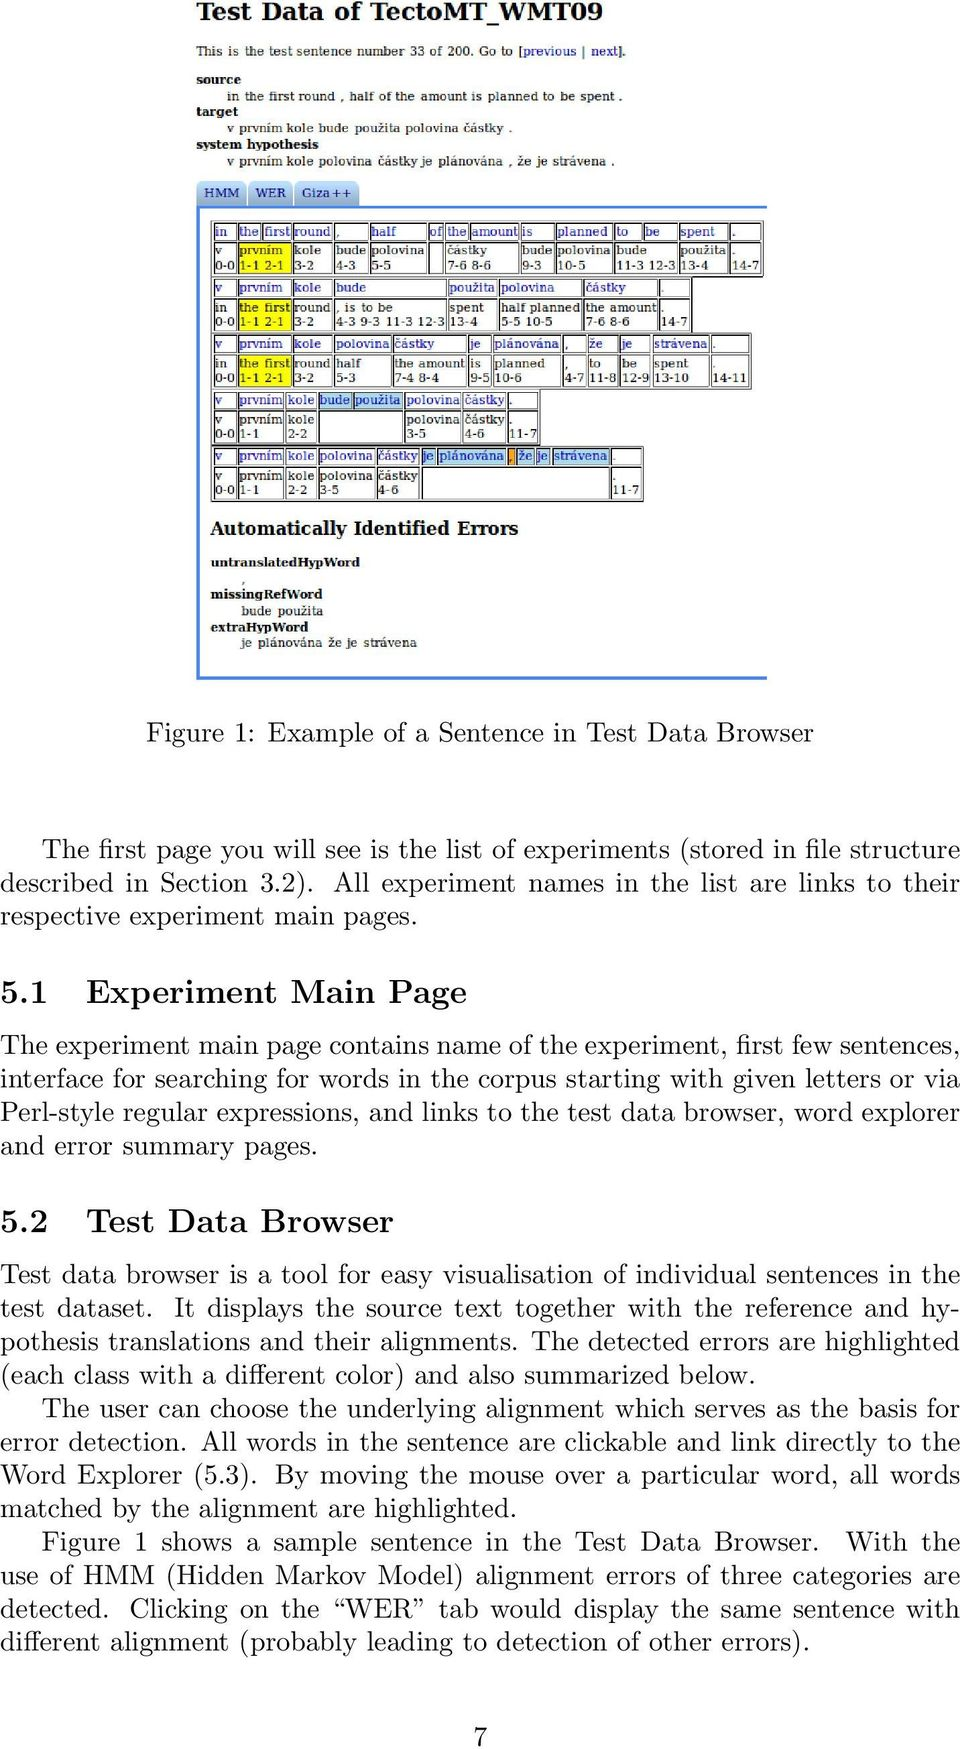 1 Experiment Main Page The experiment main page contains name of the experiment, first few sentences, interface for searching for words in the corpus starting with given letters or via Perl-style